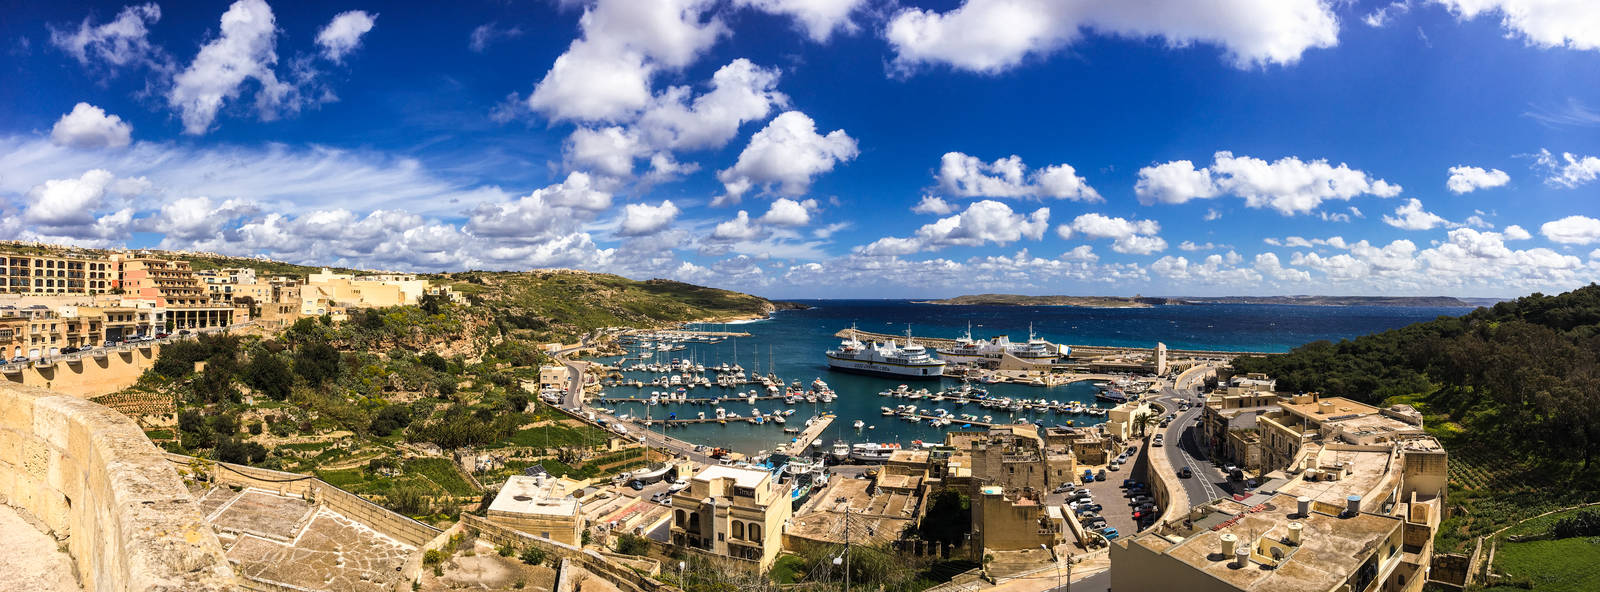 The town of Mgarr, Gozo, Malta